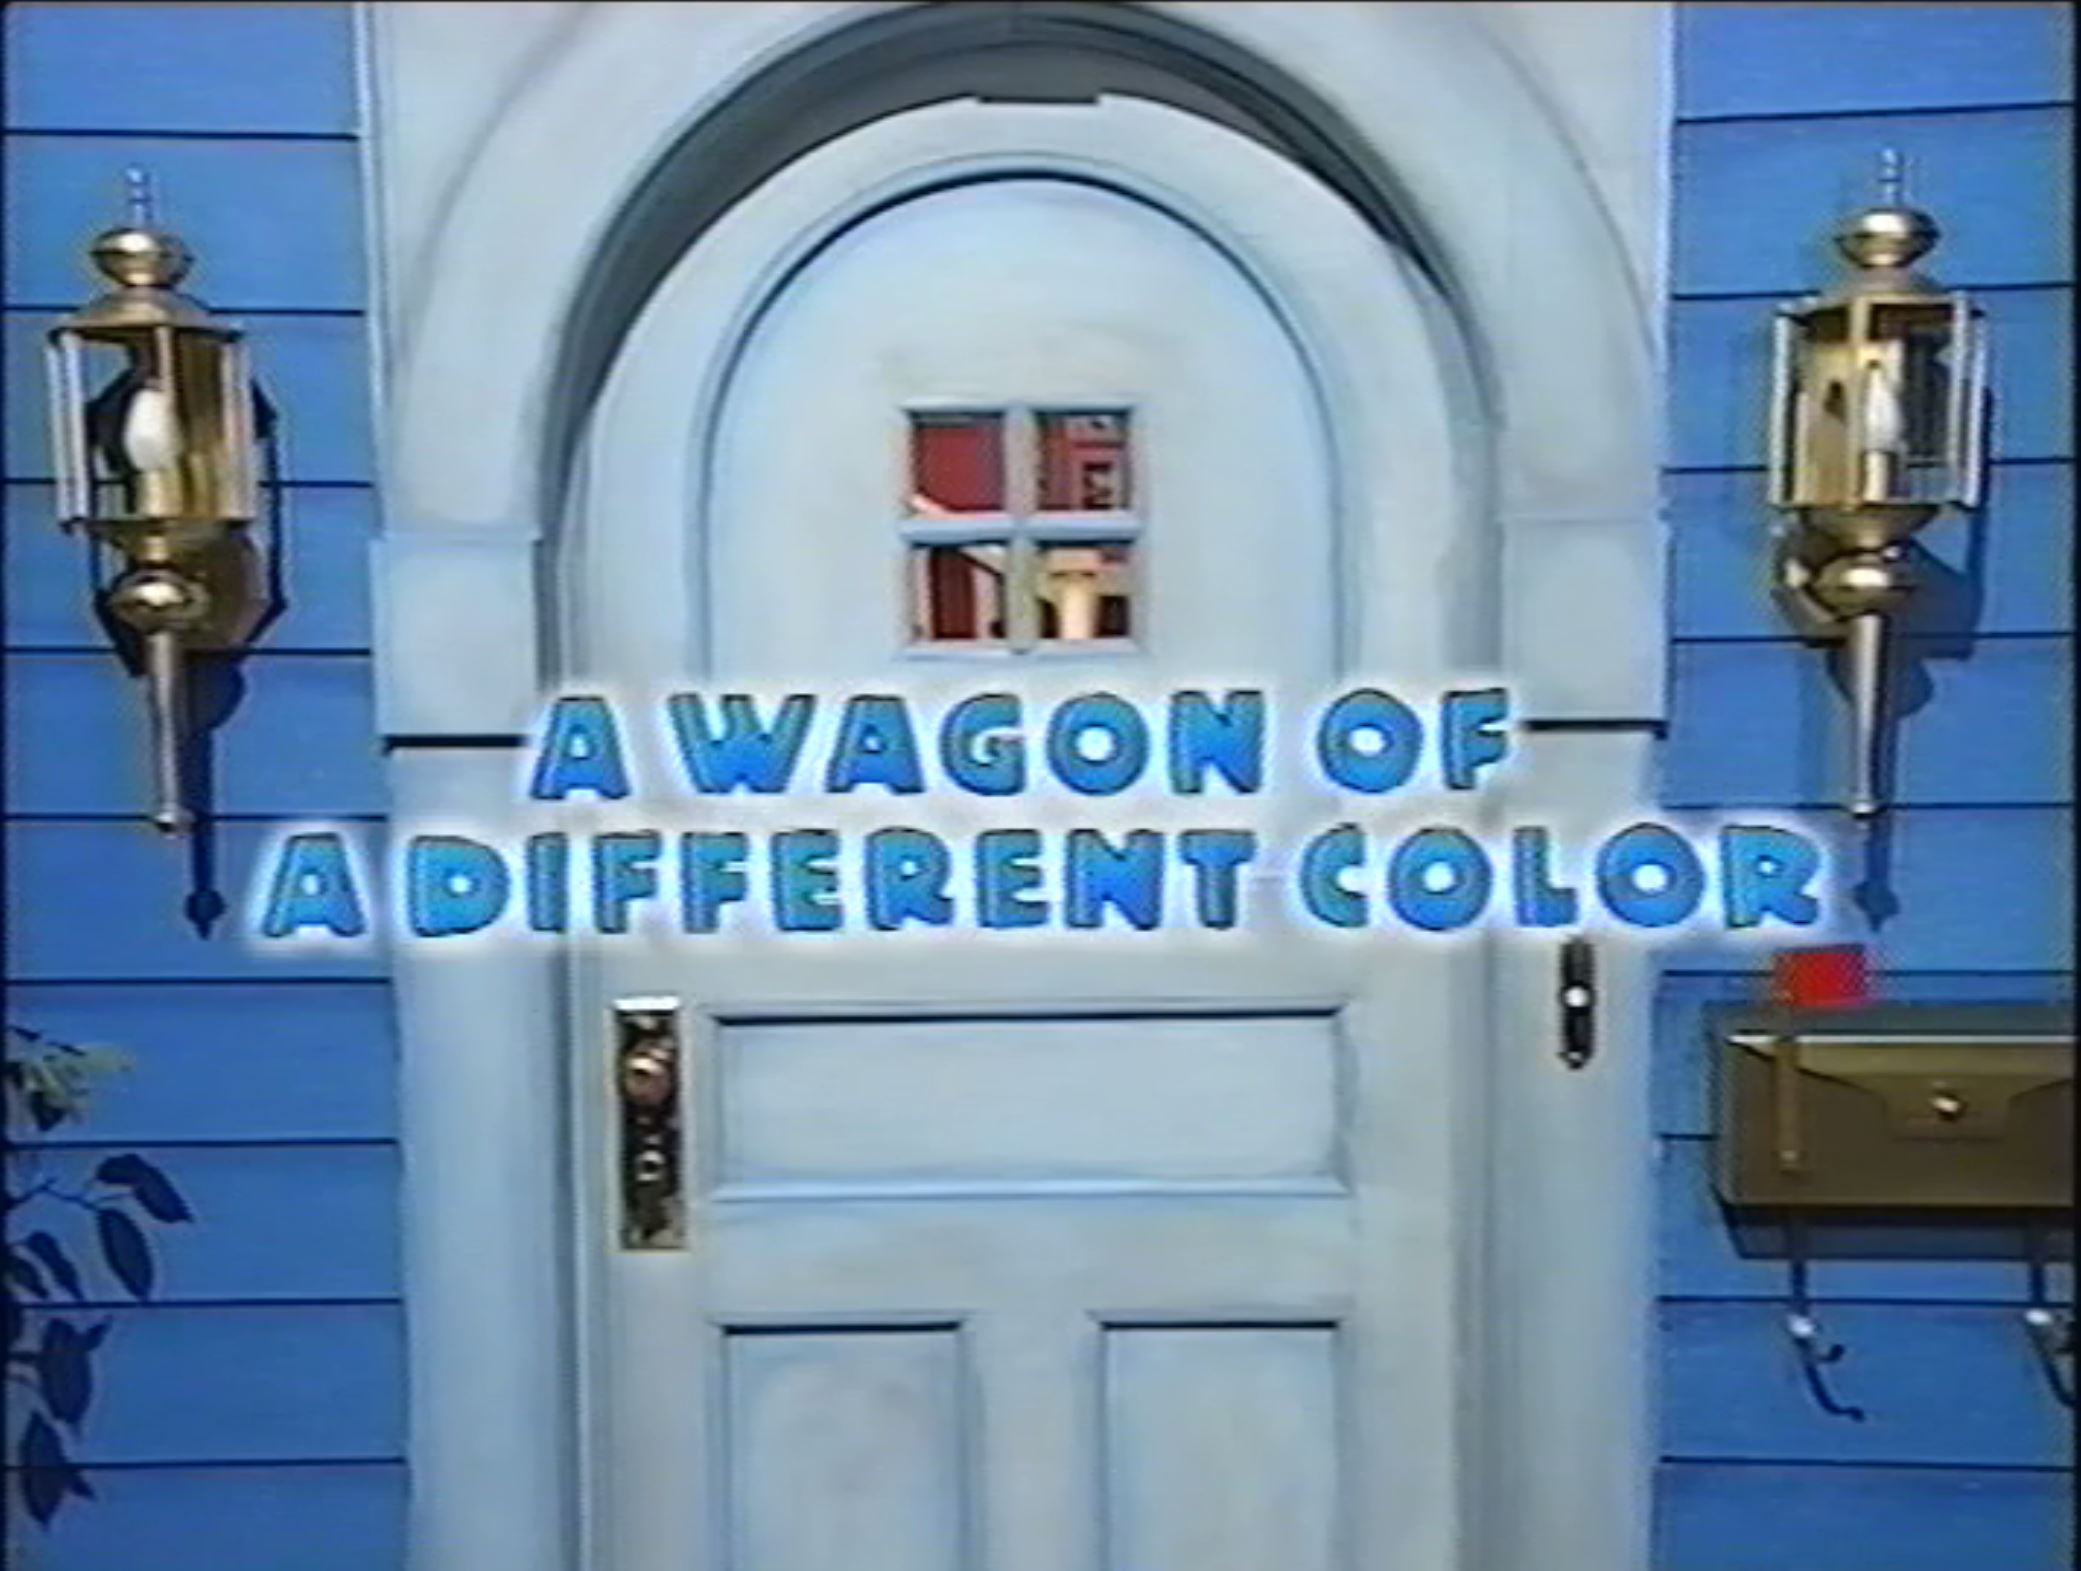 Episode 111: A Wagon of a Different Color